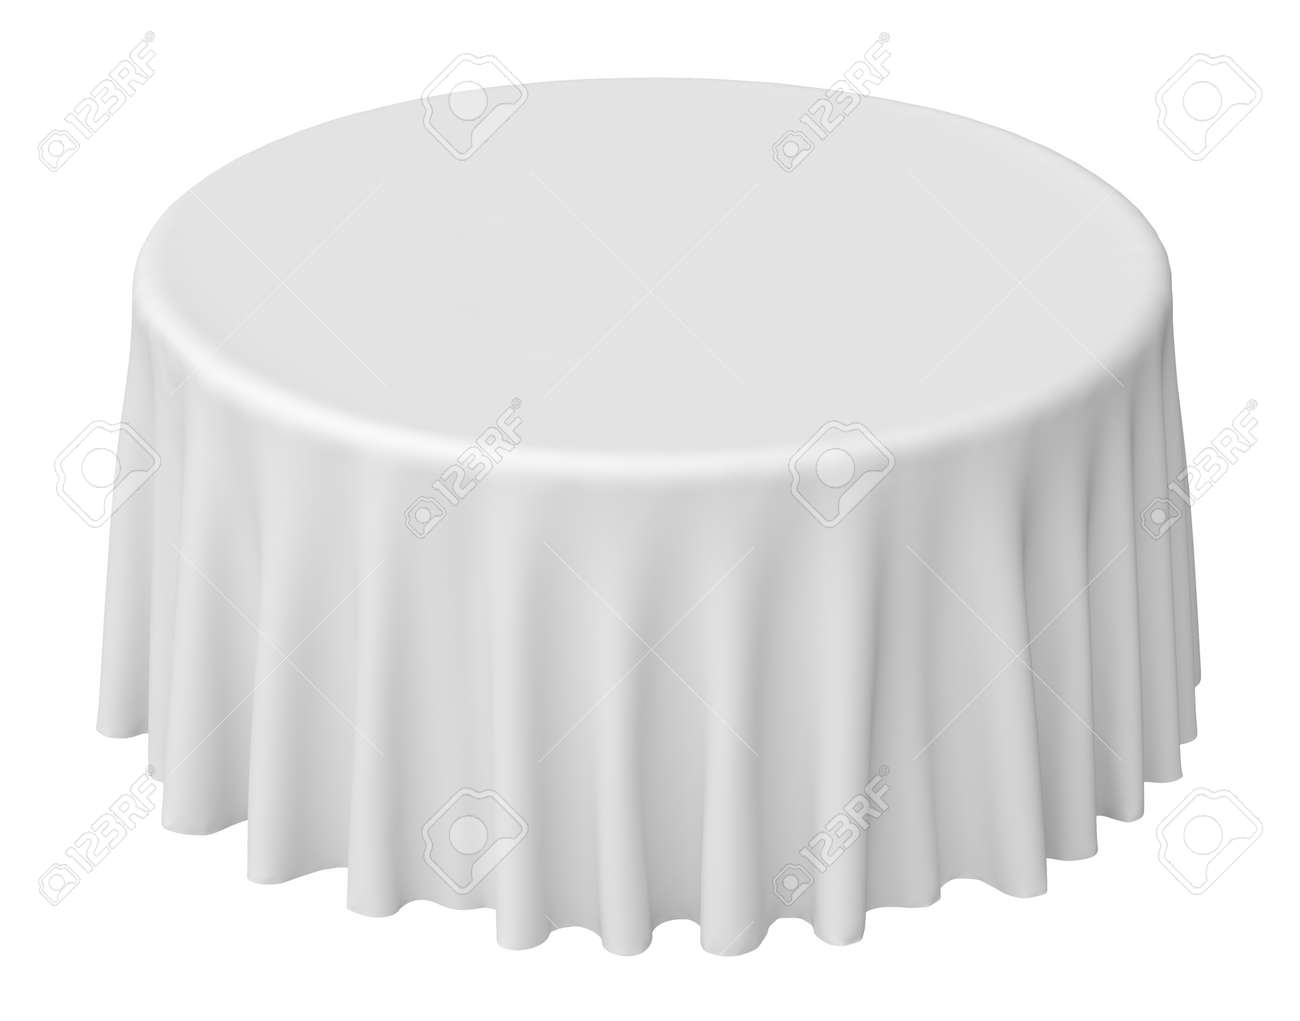 White round tablecloth isolated on white, 3d illustration - 26378184